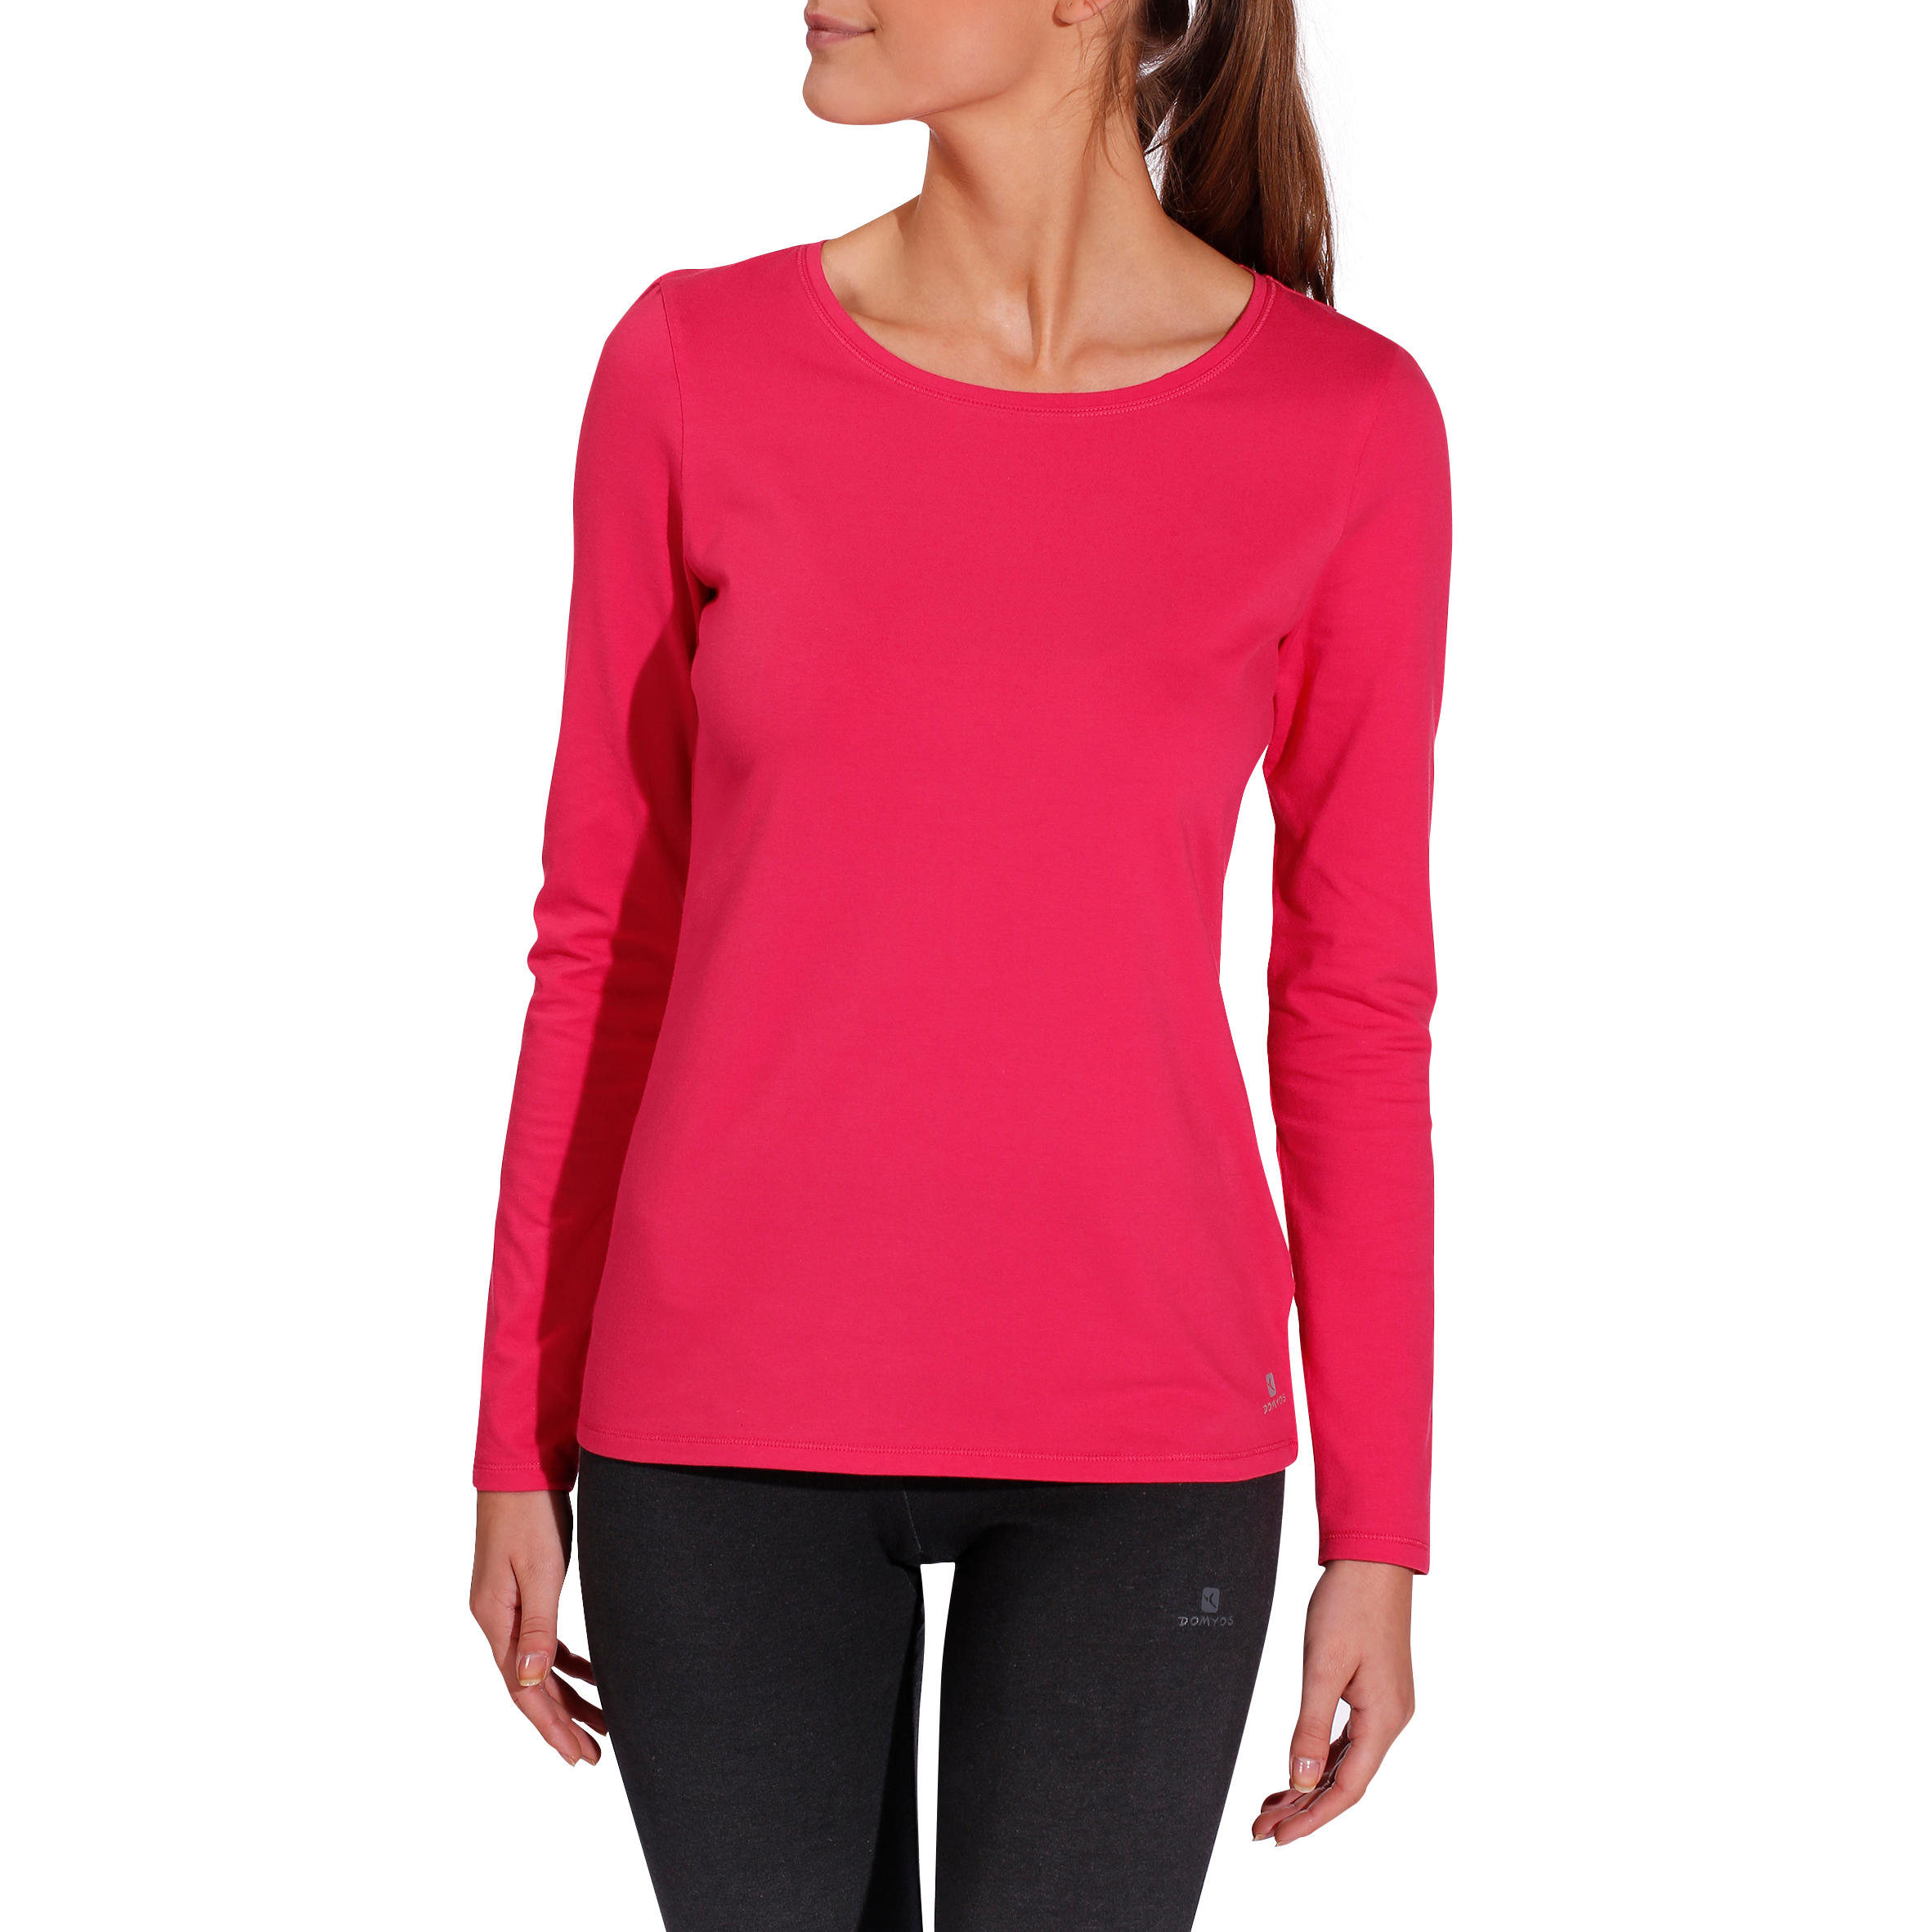 100 Women's Long Sleeved Gym & Pilates T-Shirt - Bright Pink